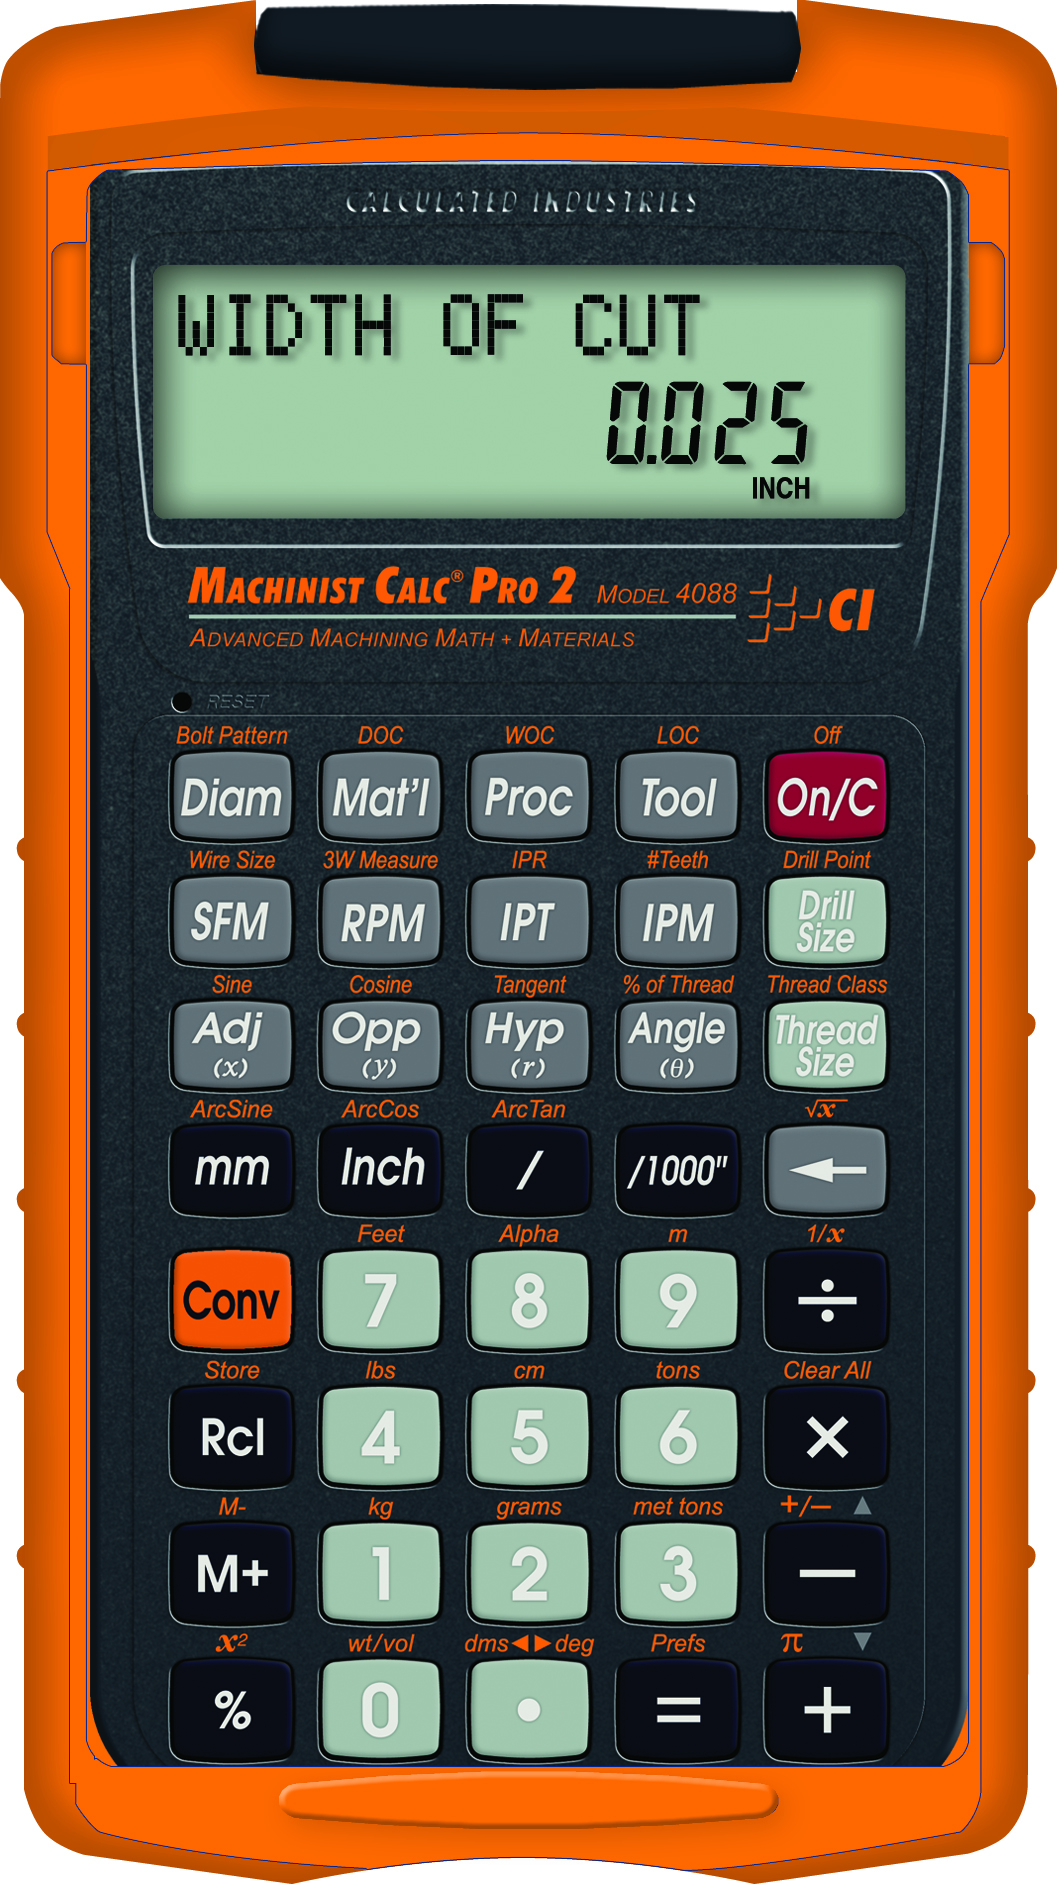 The Machinist Calc Pro 2